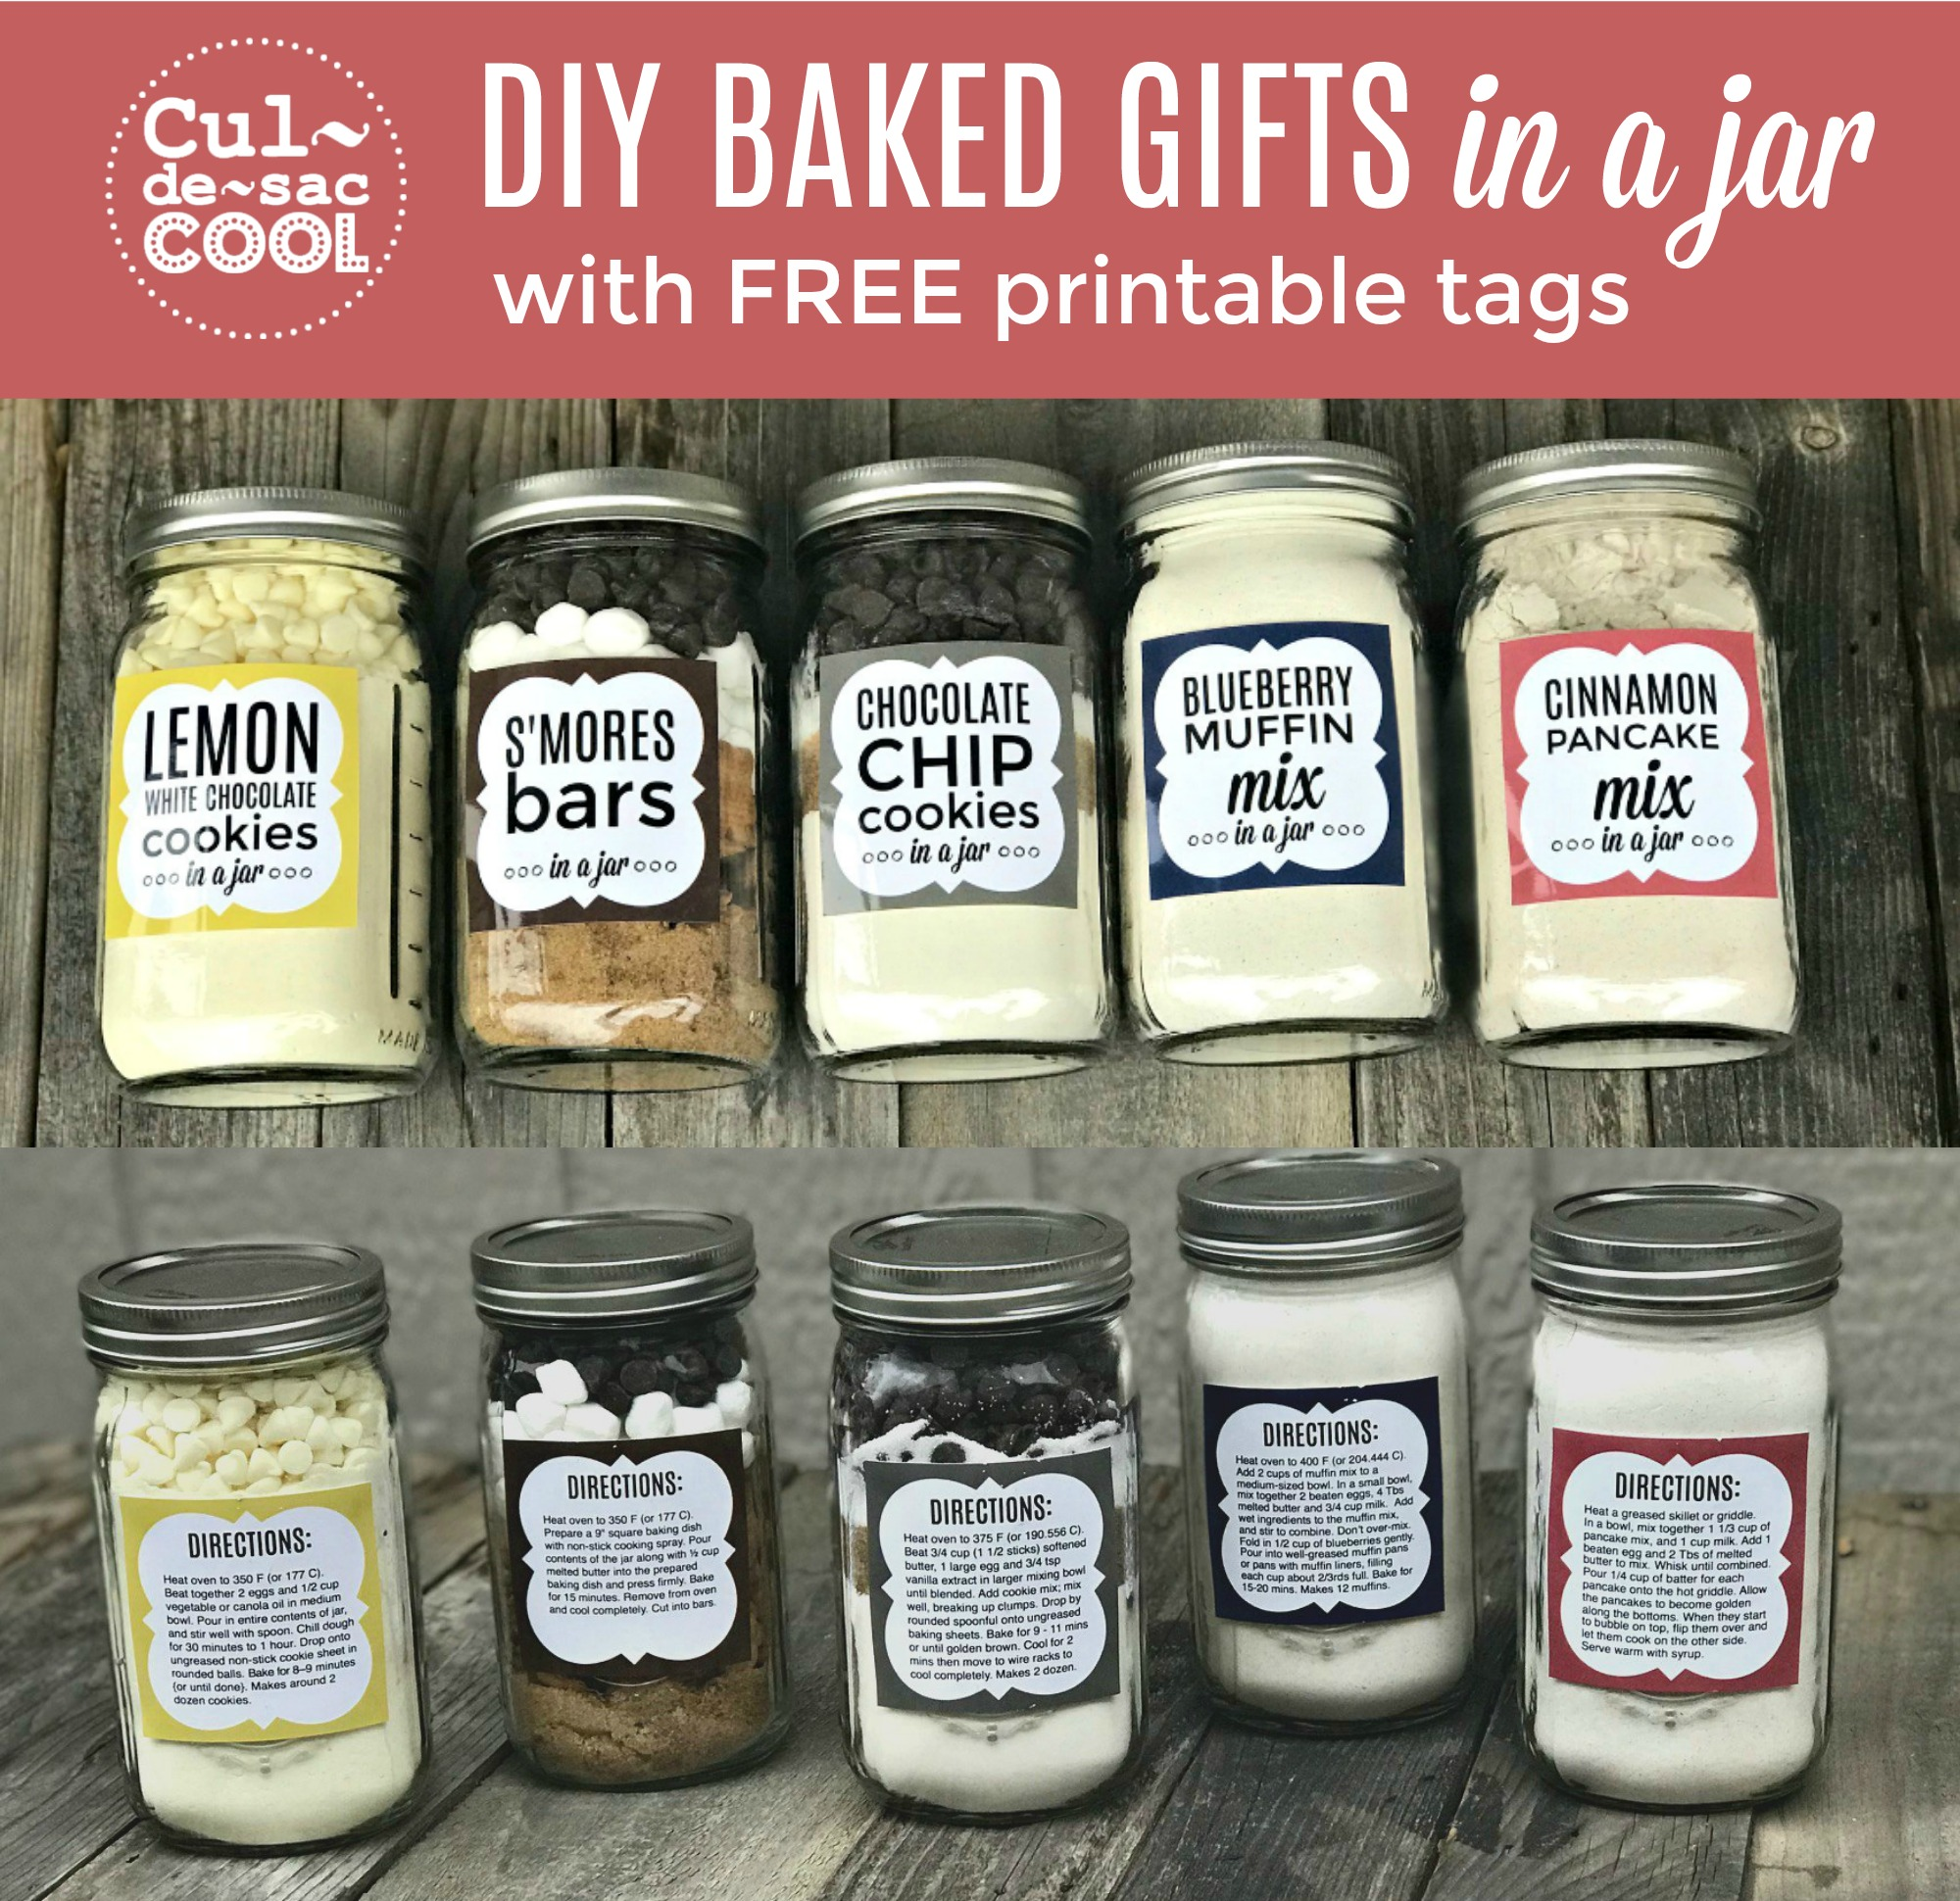 5 diy holiday baked gifts in a jar with free printable recipe tags 5 diy baked gifts in a jar with free printable recipe tags part 2 negle Gallery